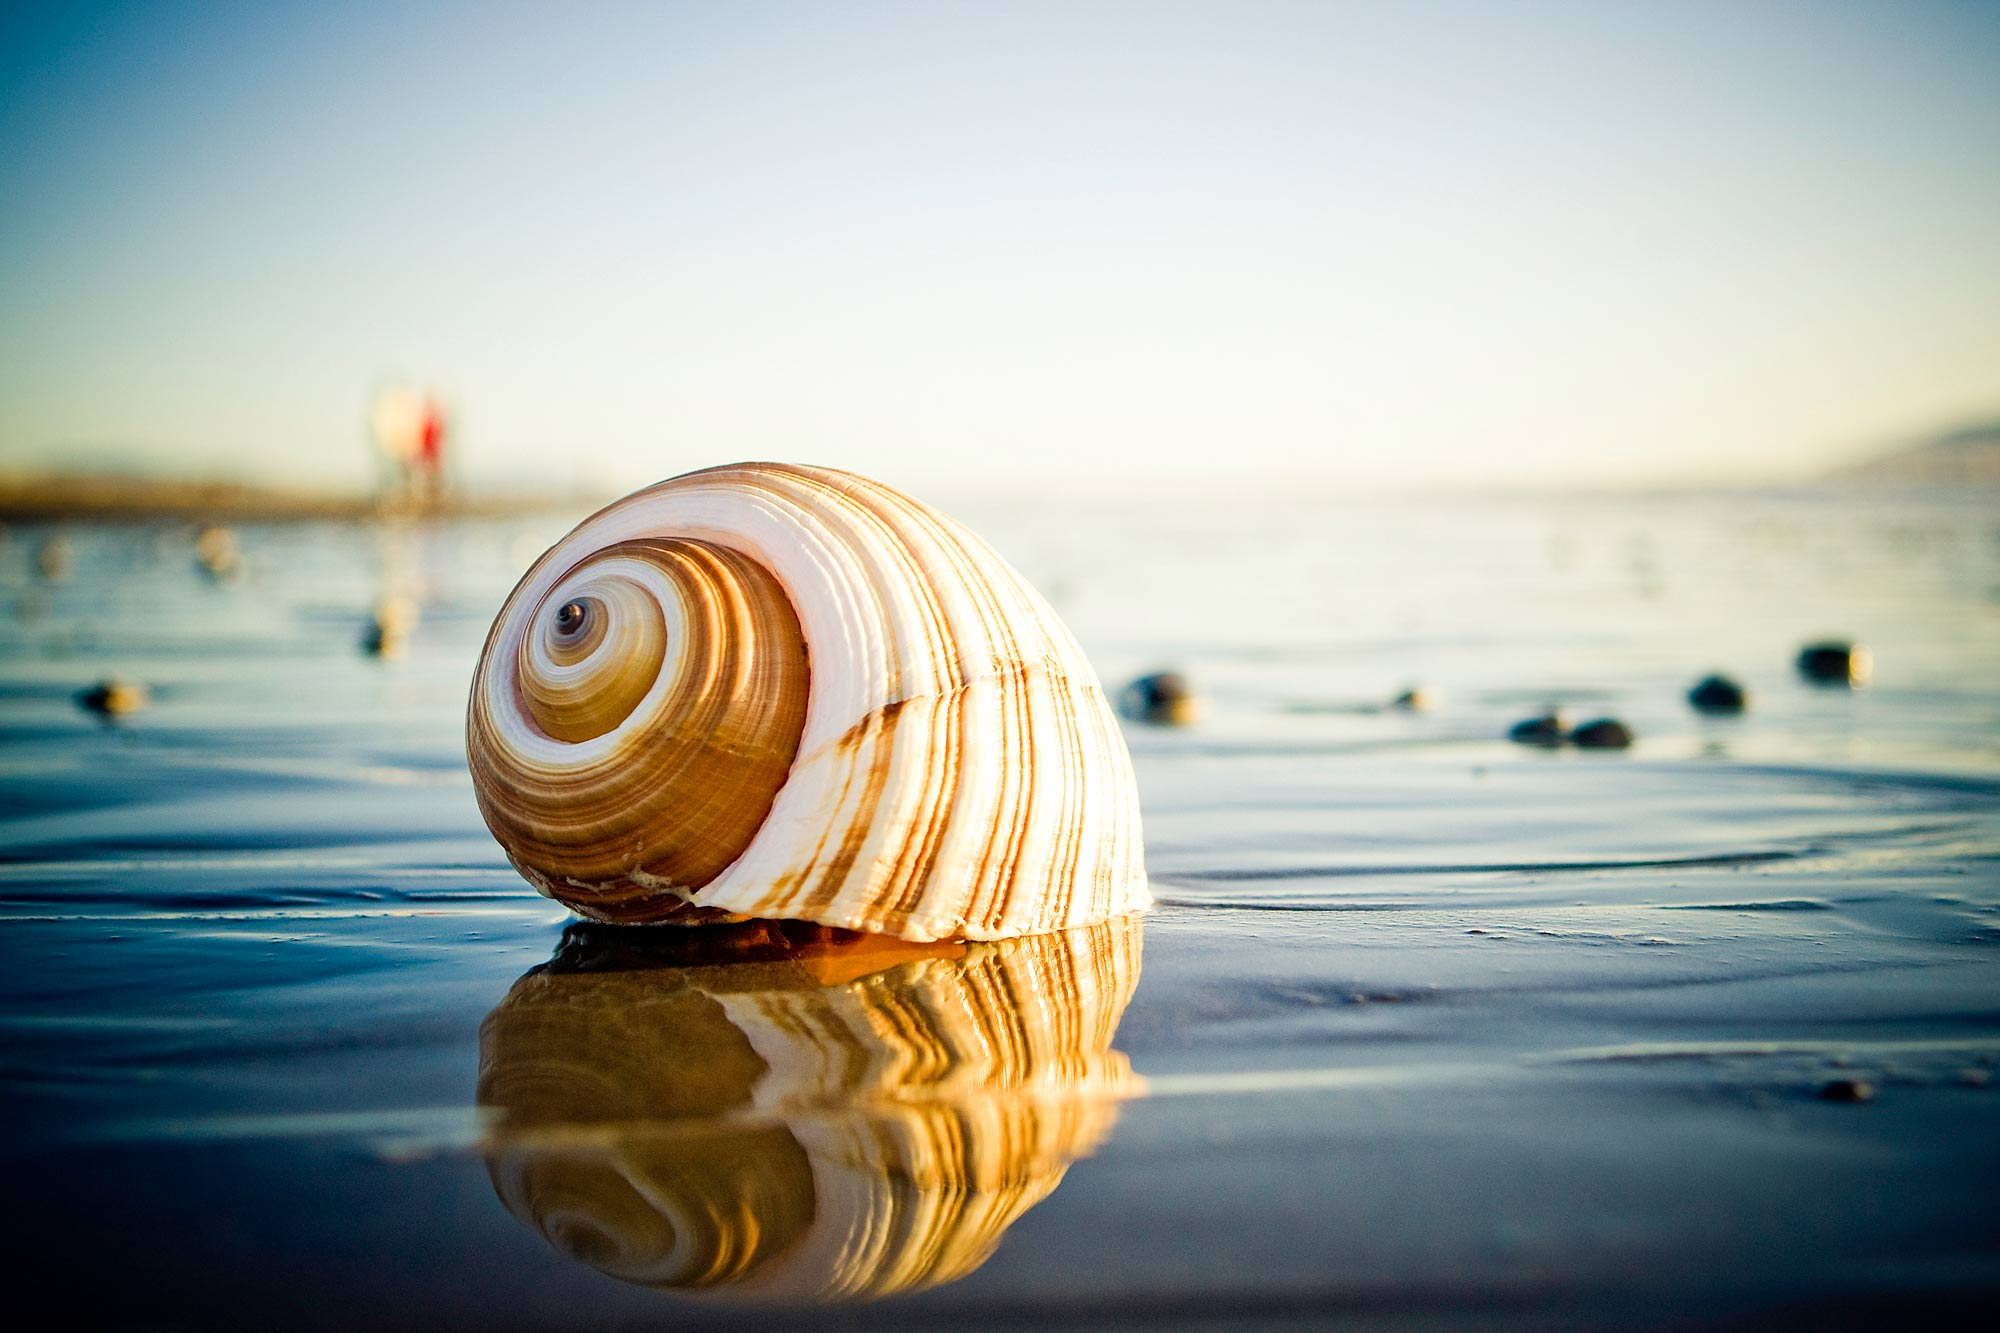 NEW ZEALAND STOCK IMAGERY / Otaki Beach